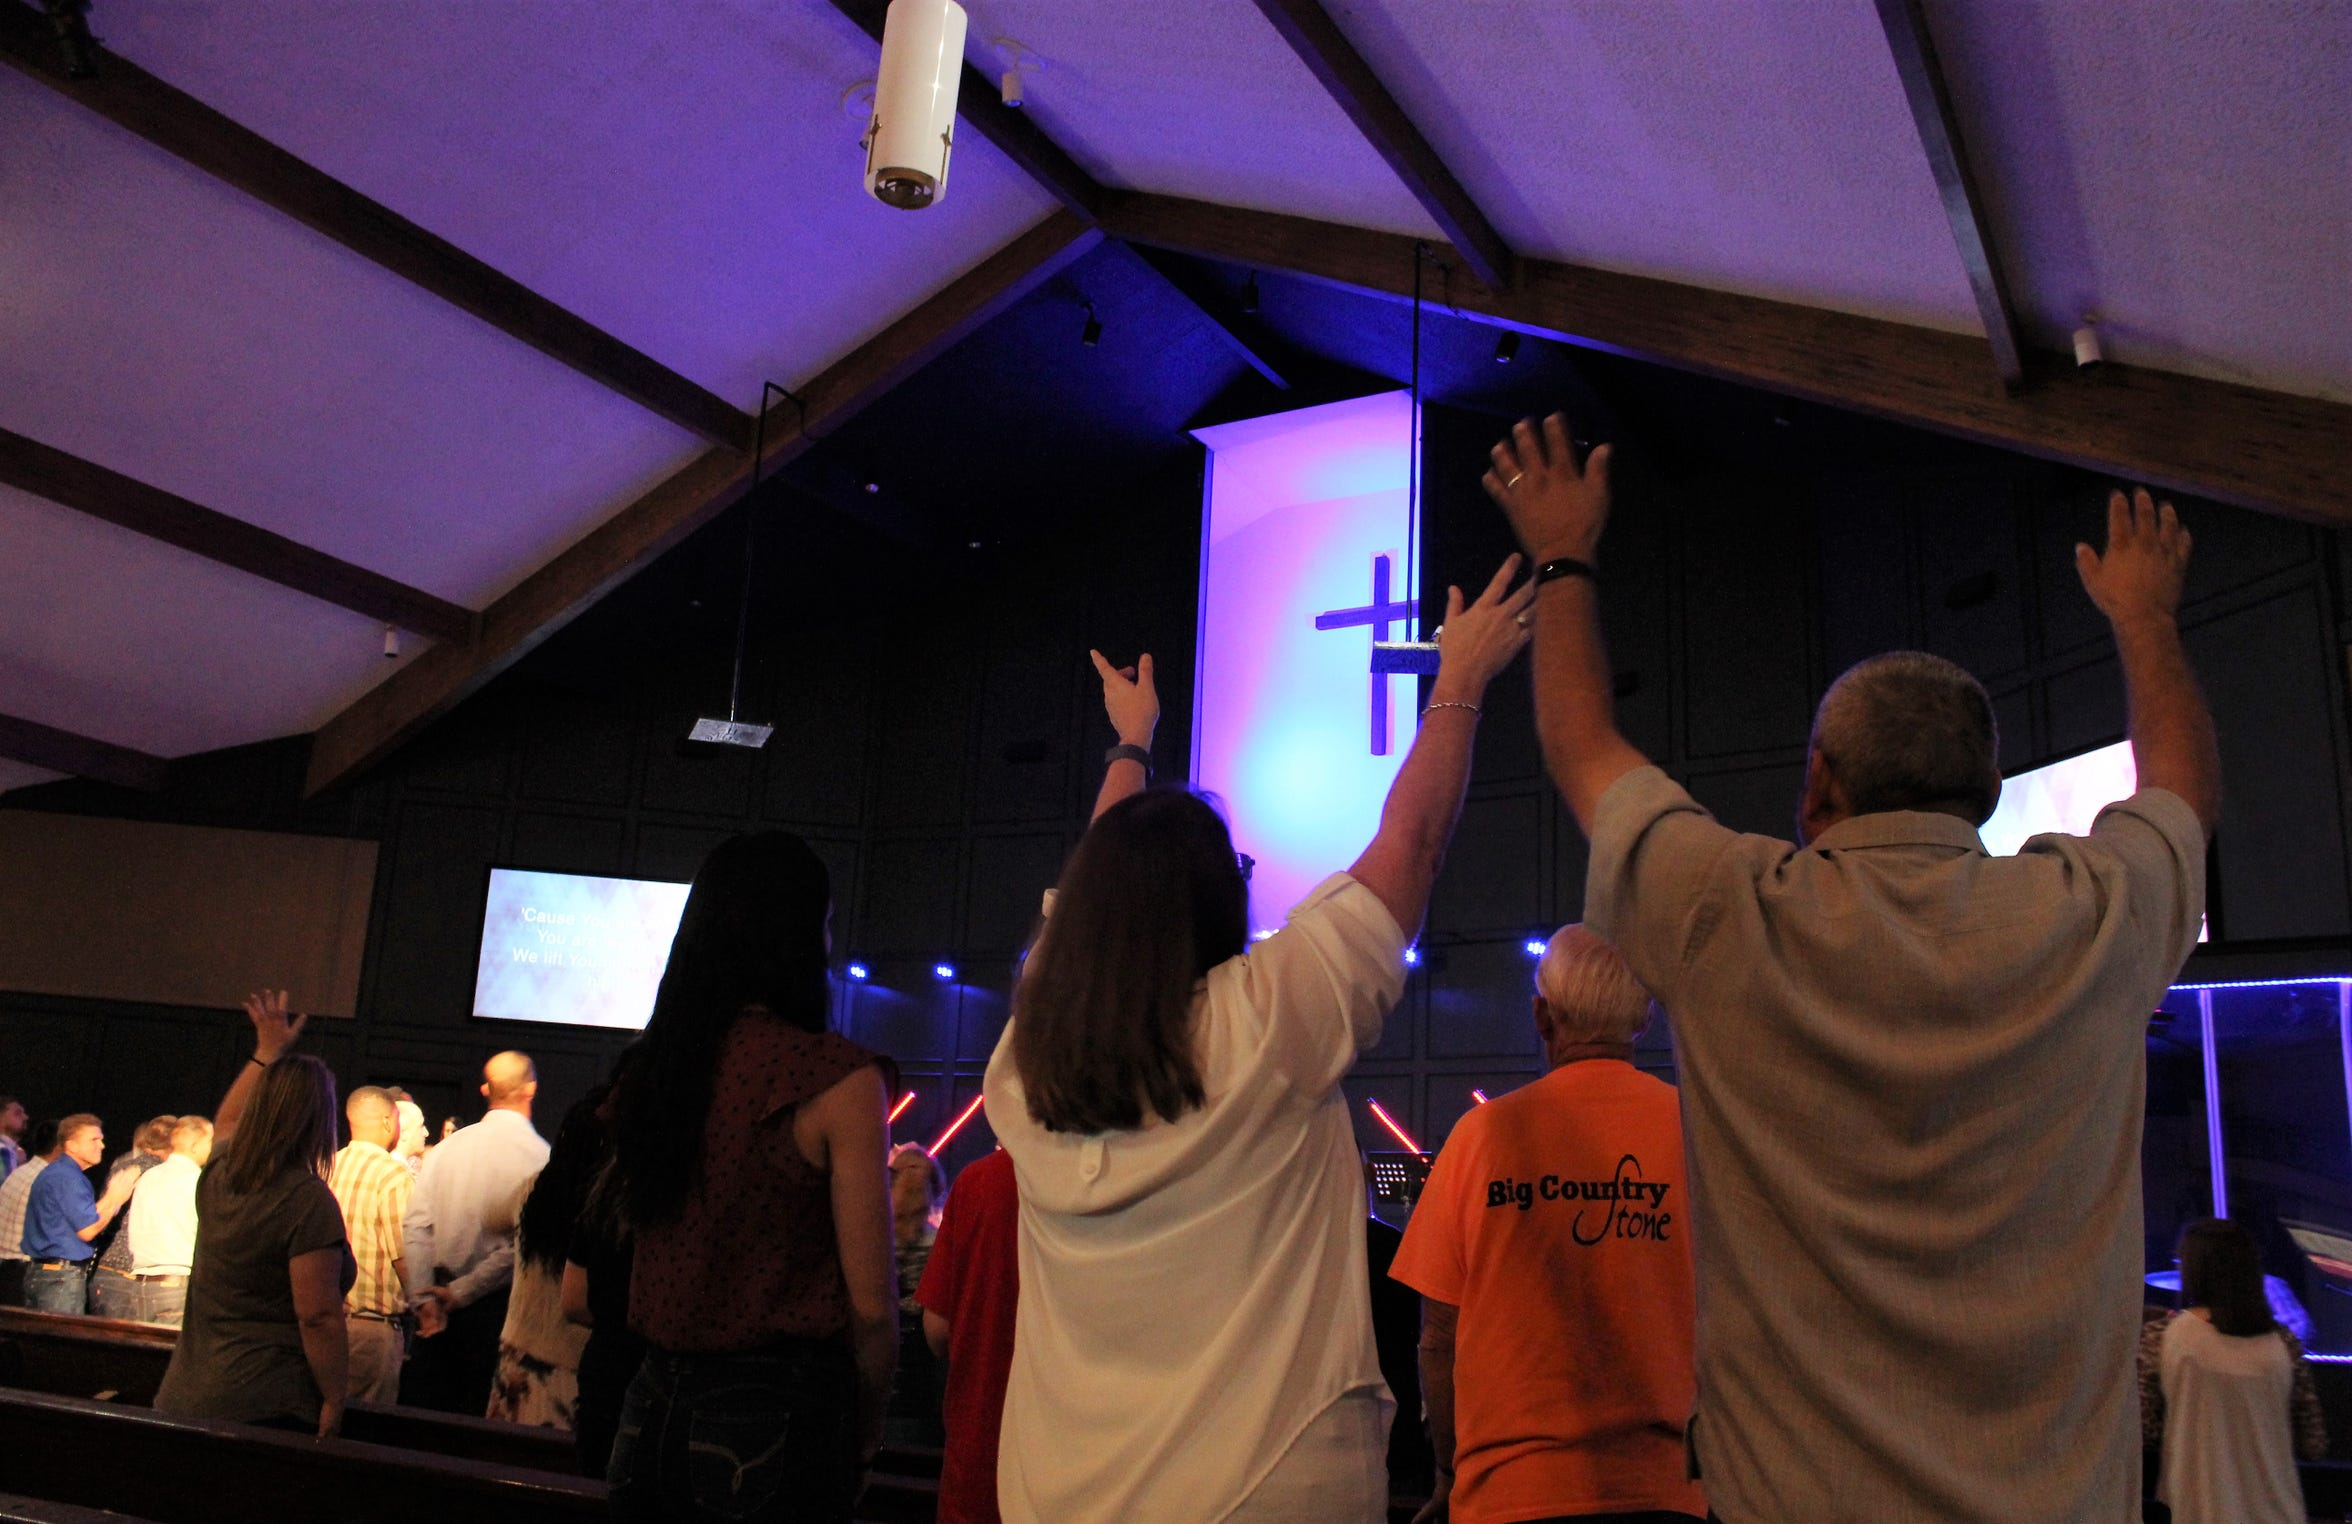 Rise Church worshipers raise their hands in hallelujah during an Oct. 6 service at their new site on the Elmcrest Baptist Church campus Rise was deeded and now shares with Elmcrest.